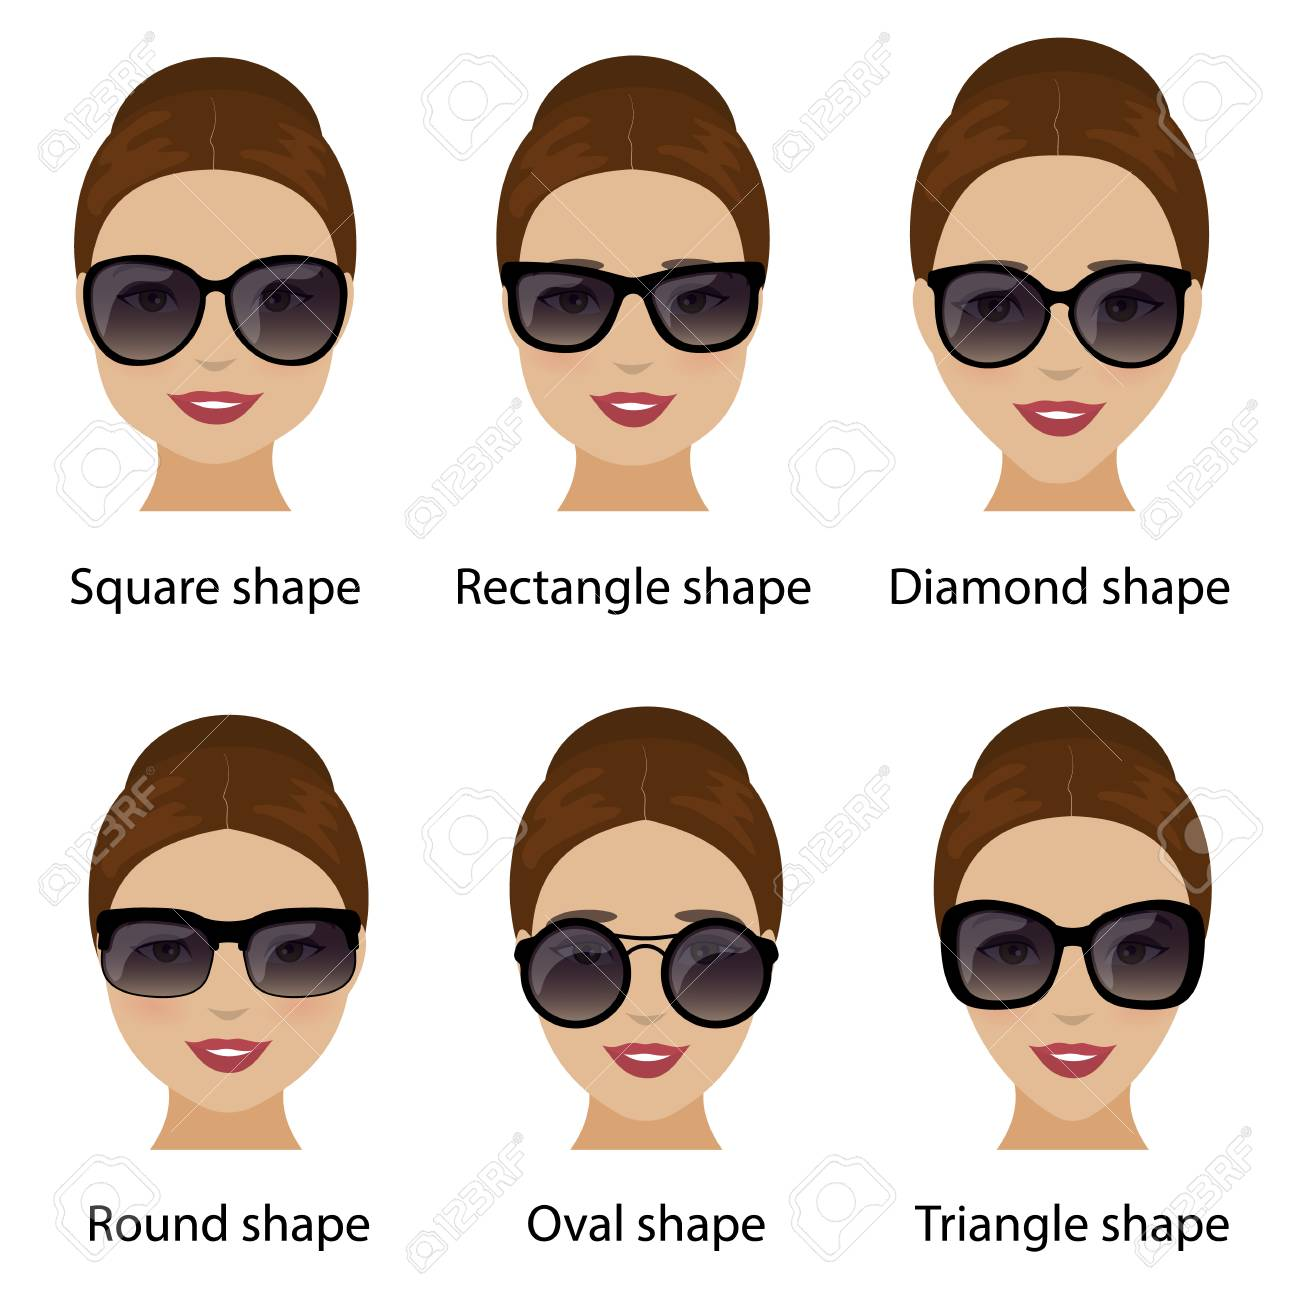 3dd3c3ed46 Spectacle frames shapes and different types of women face shapes. Face  types as oval